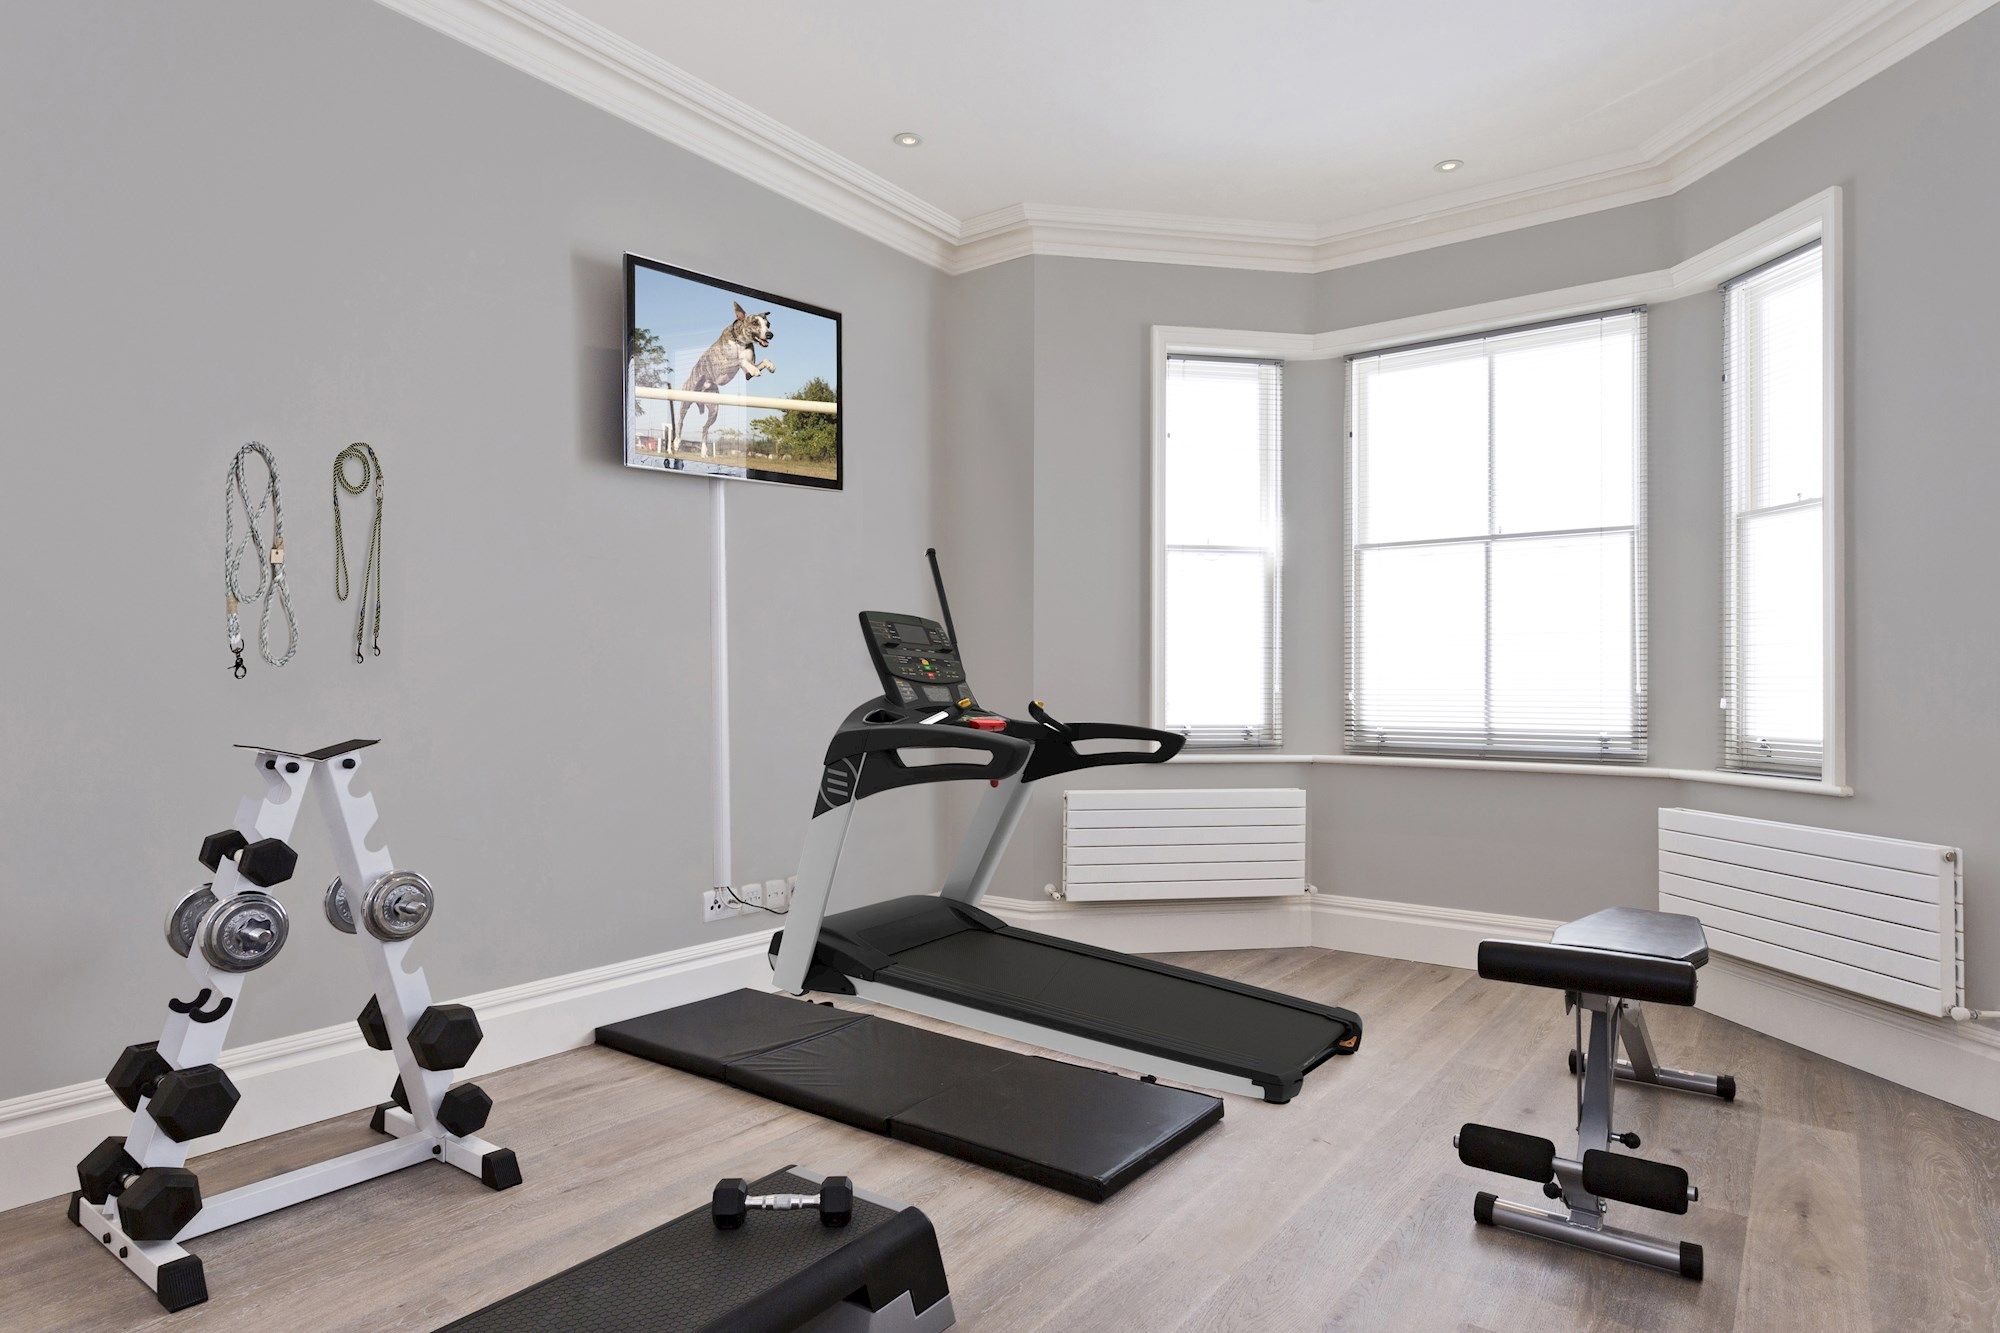 A home gym decorated in the style of a greyhound